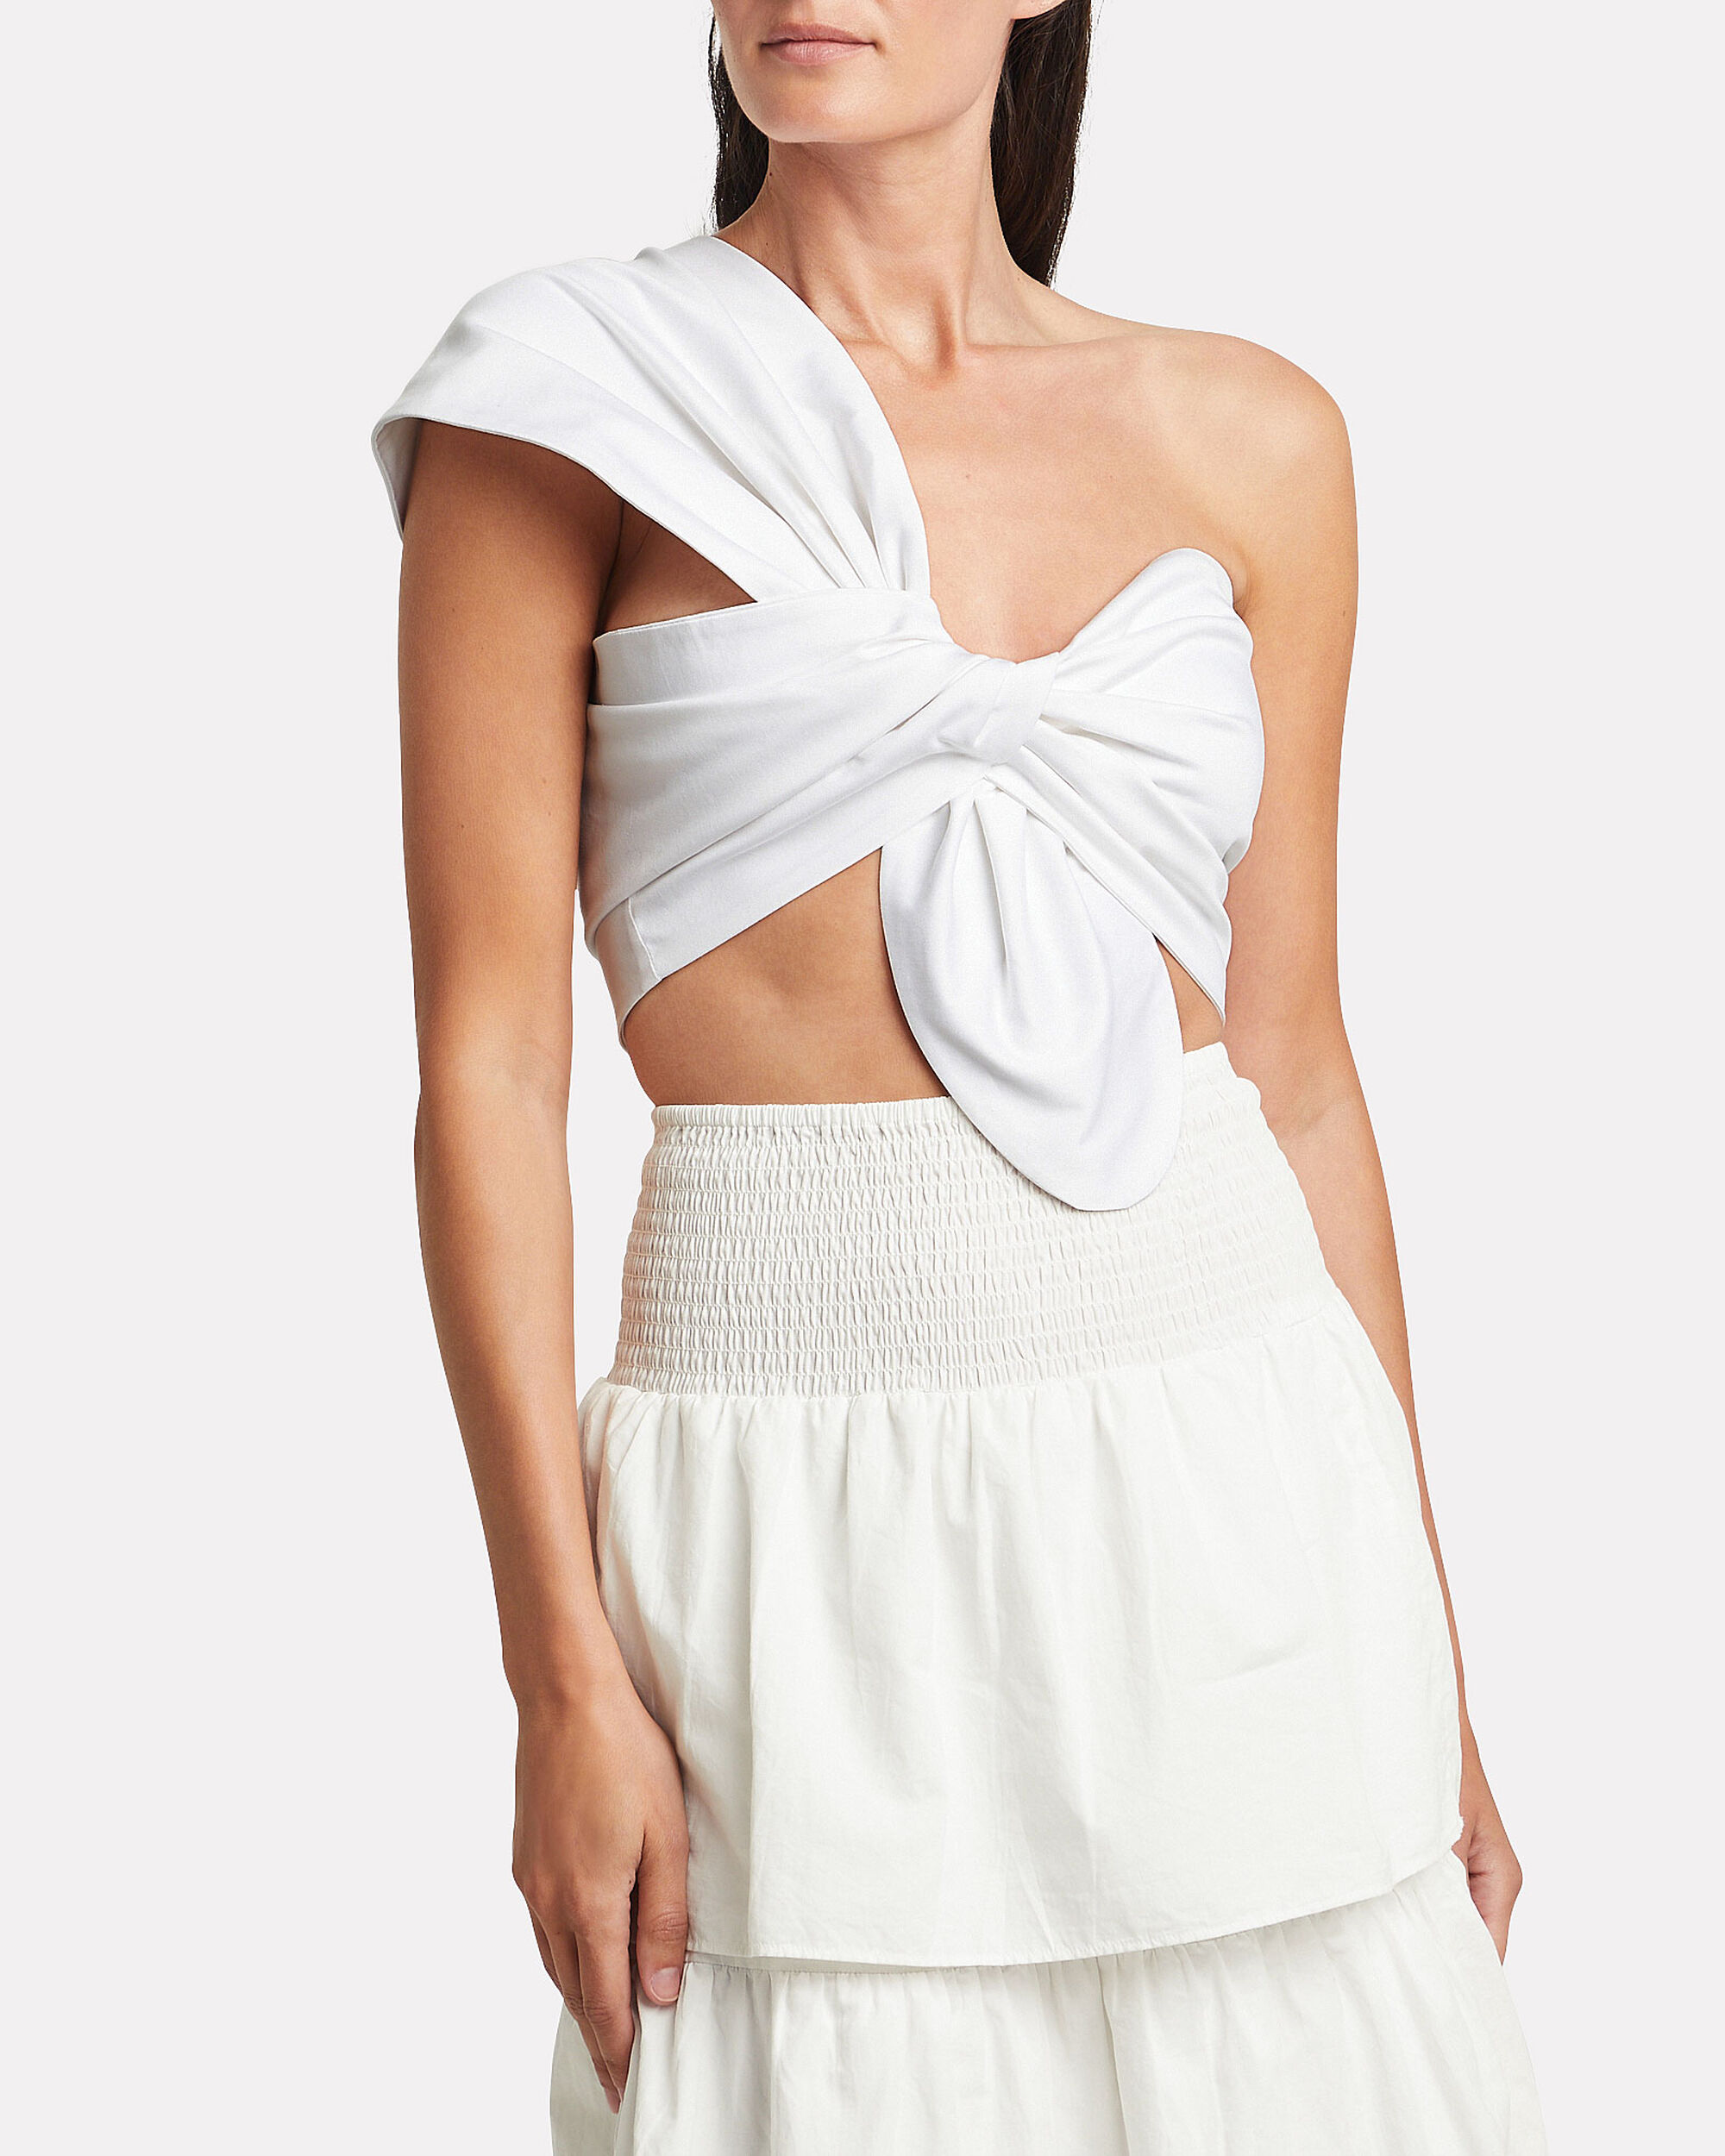 Just Bee Queen Womens Cotton One Shoulder Crop Top White Size XS